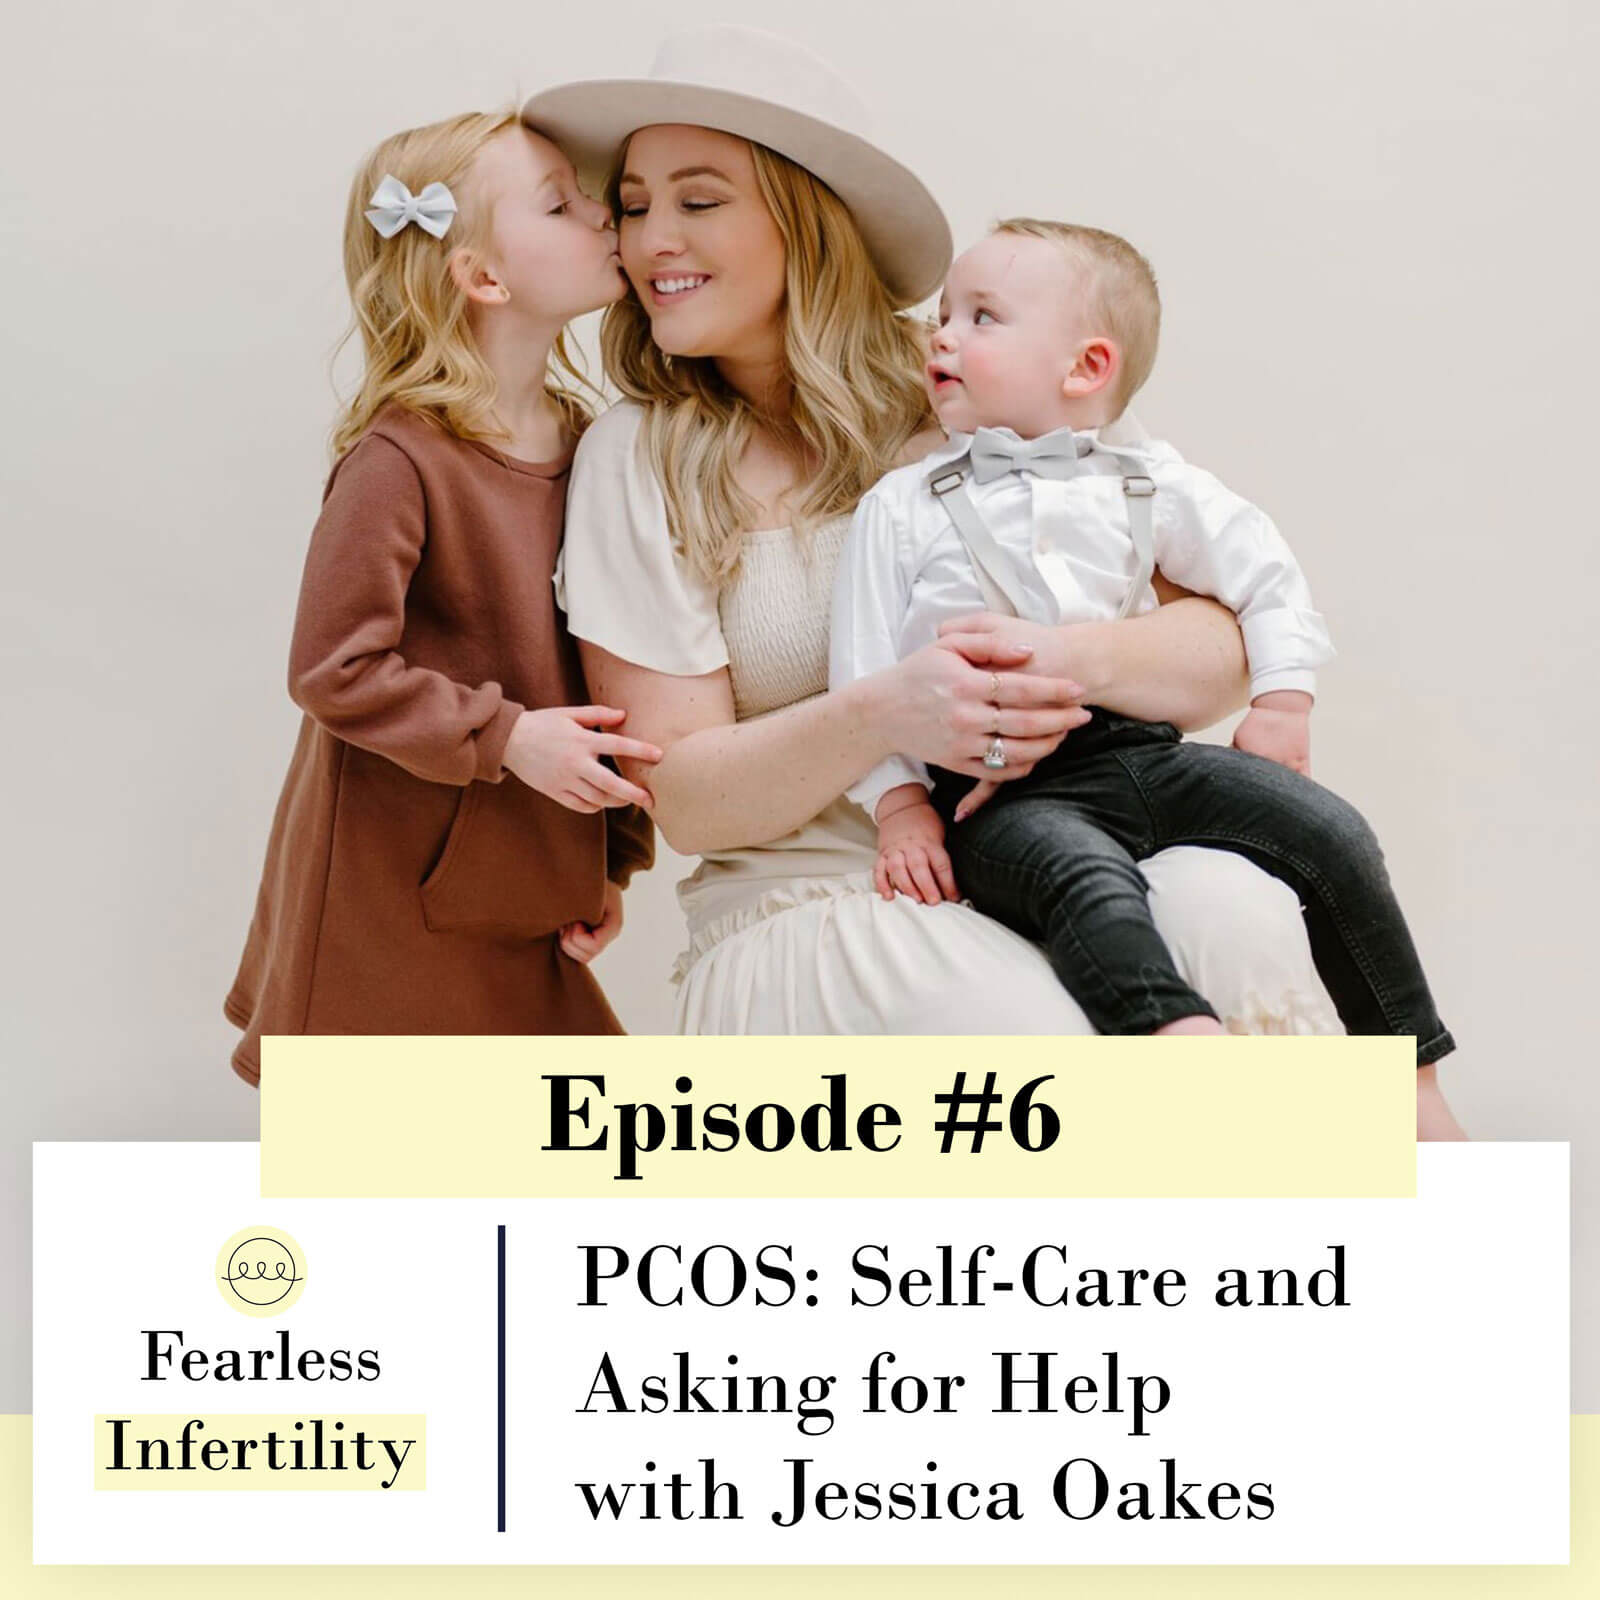 Fearless Infertility with Jenica Parcell | PCOS: Self-Care and Asking for Help with Jessica Oakes